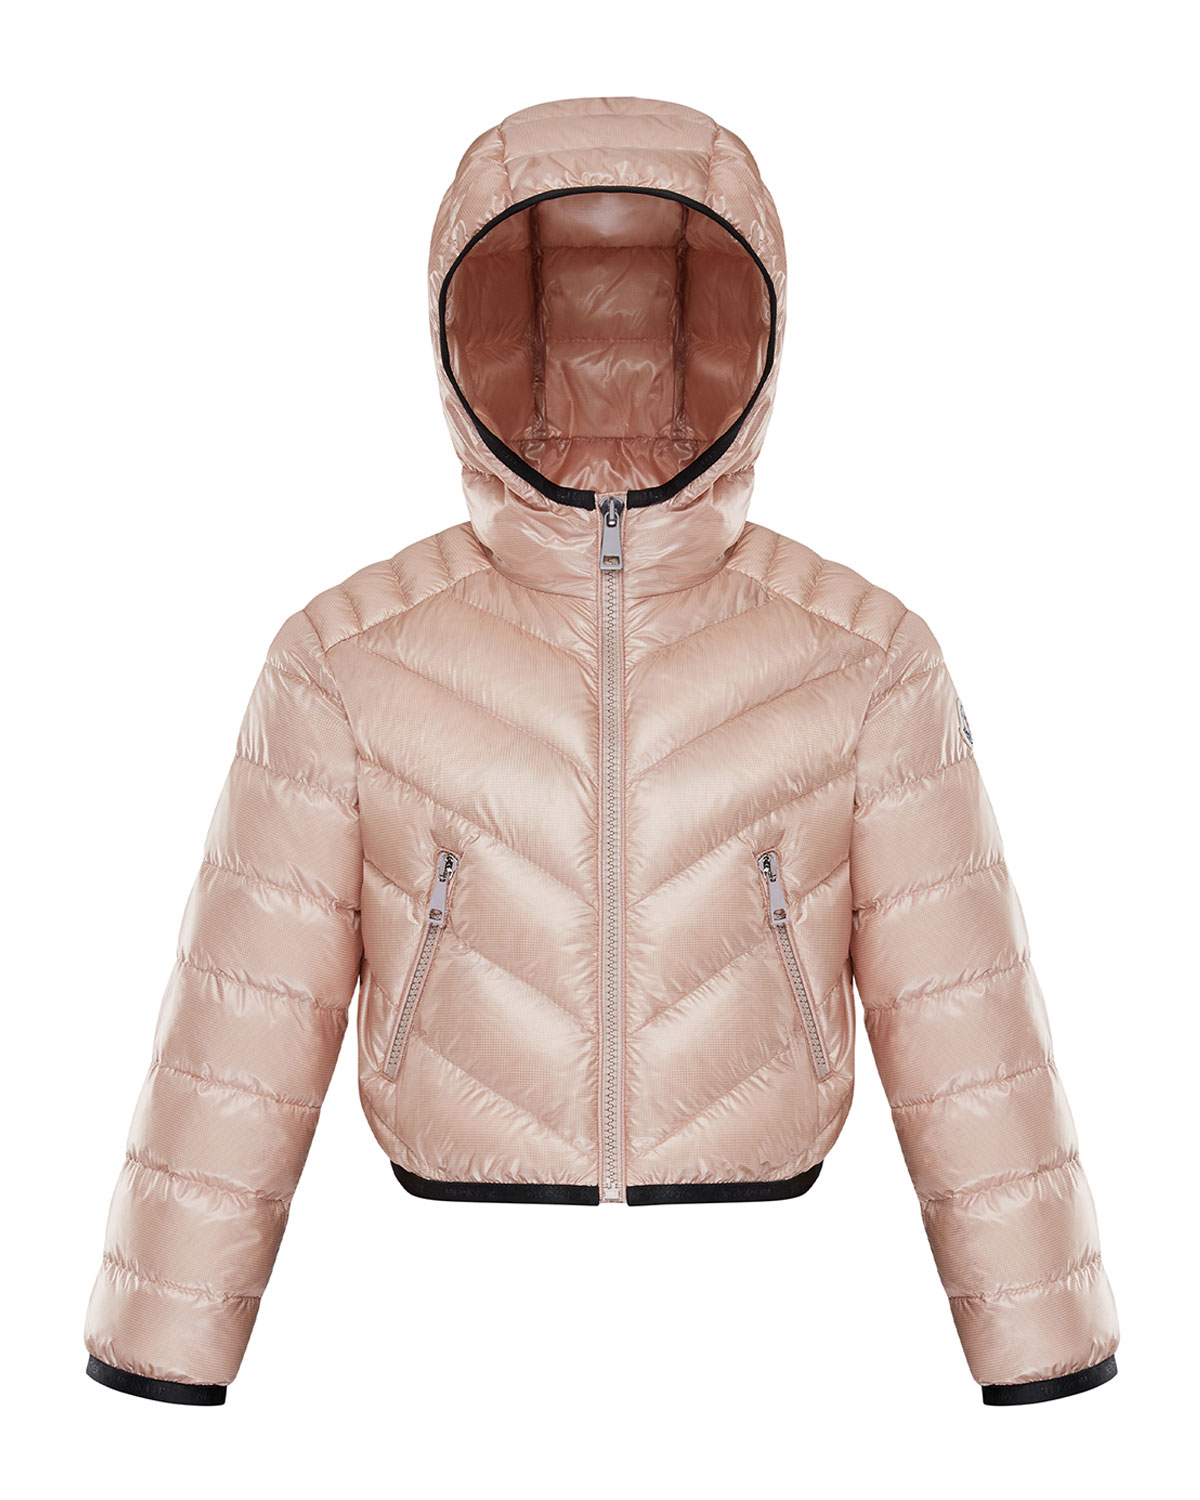 Moncler GIRL'S QUILTED PUFFER JACKET W/ HOOD